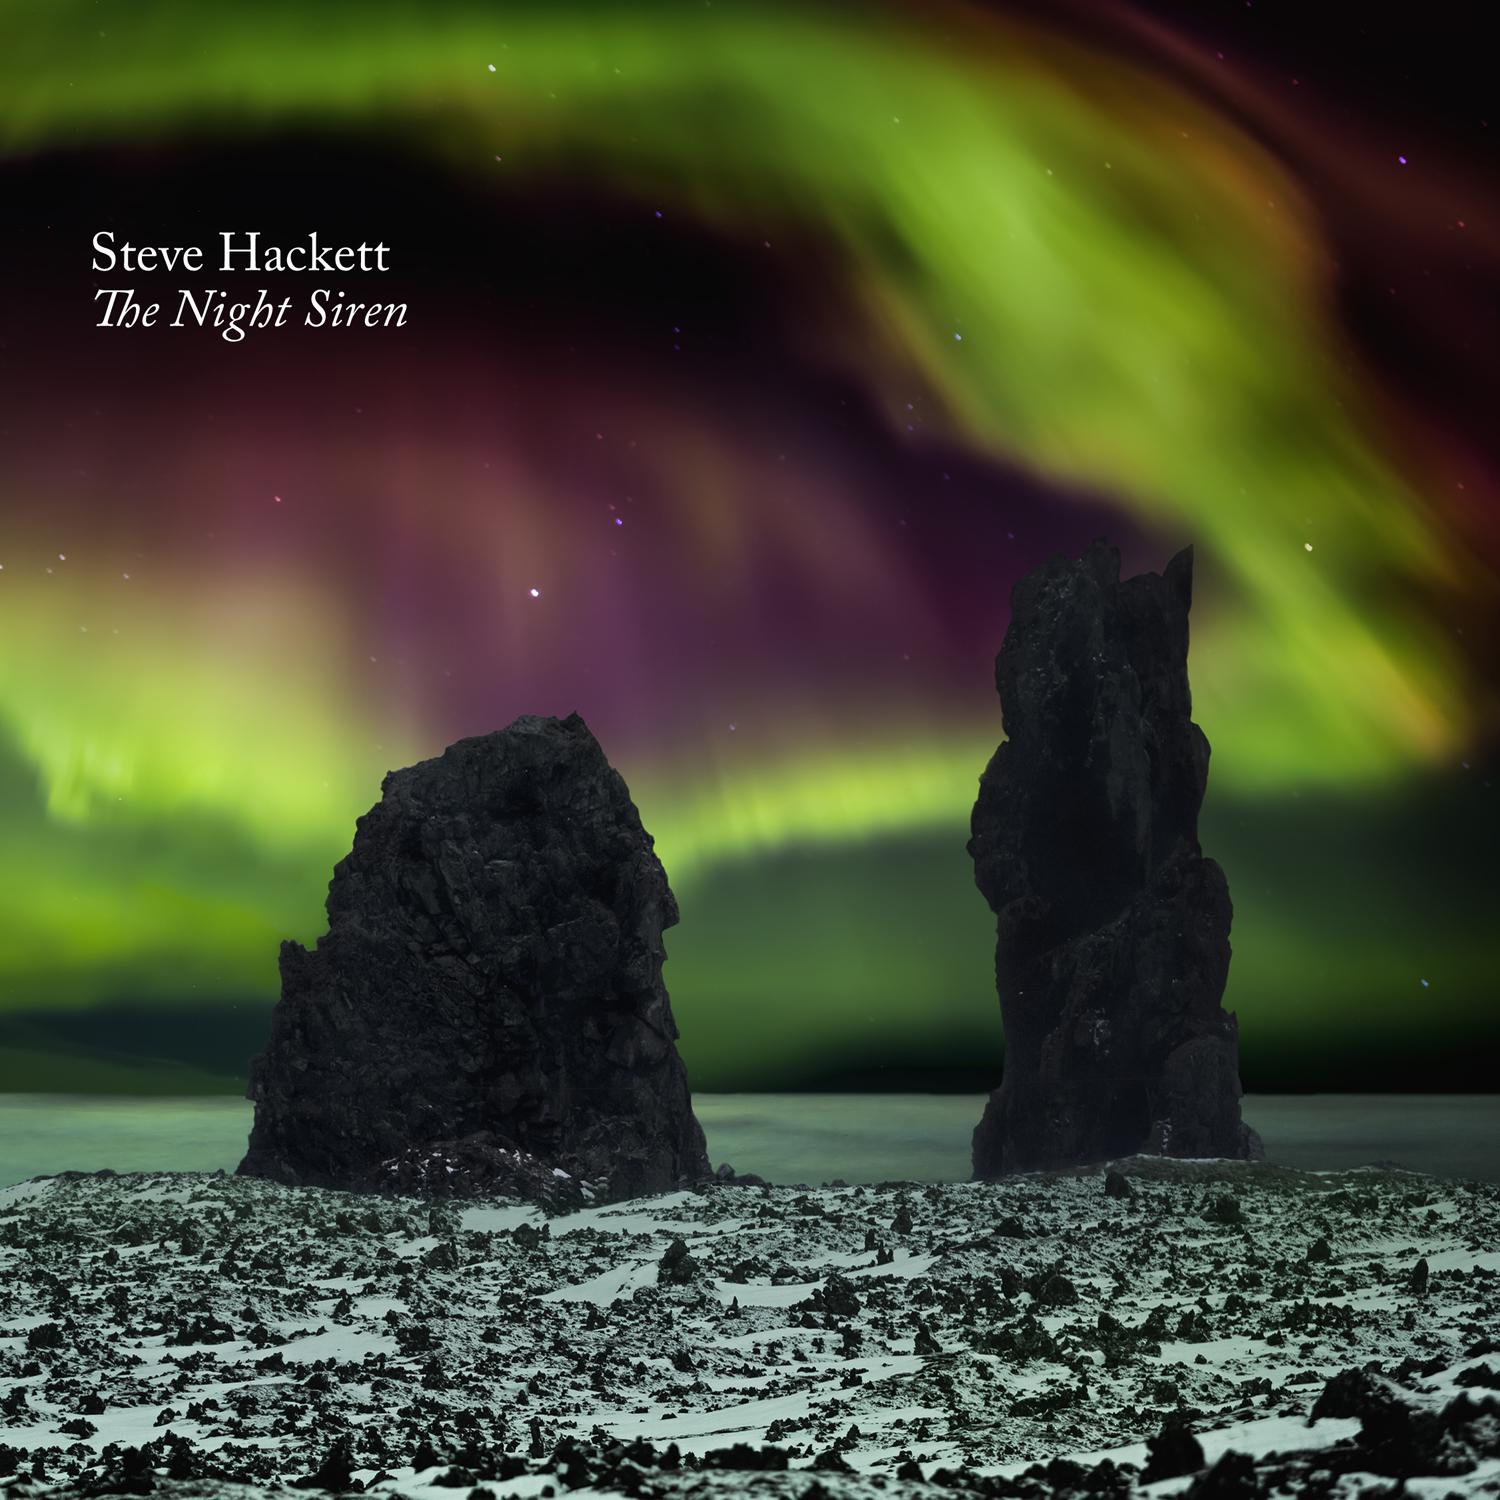 Steve Hackett - The Night Siren - Album Cover